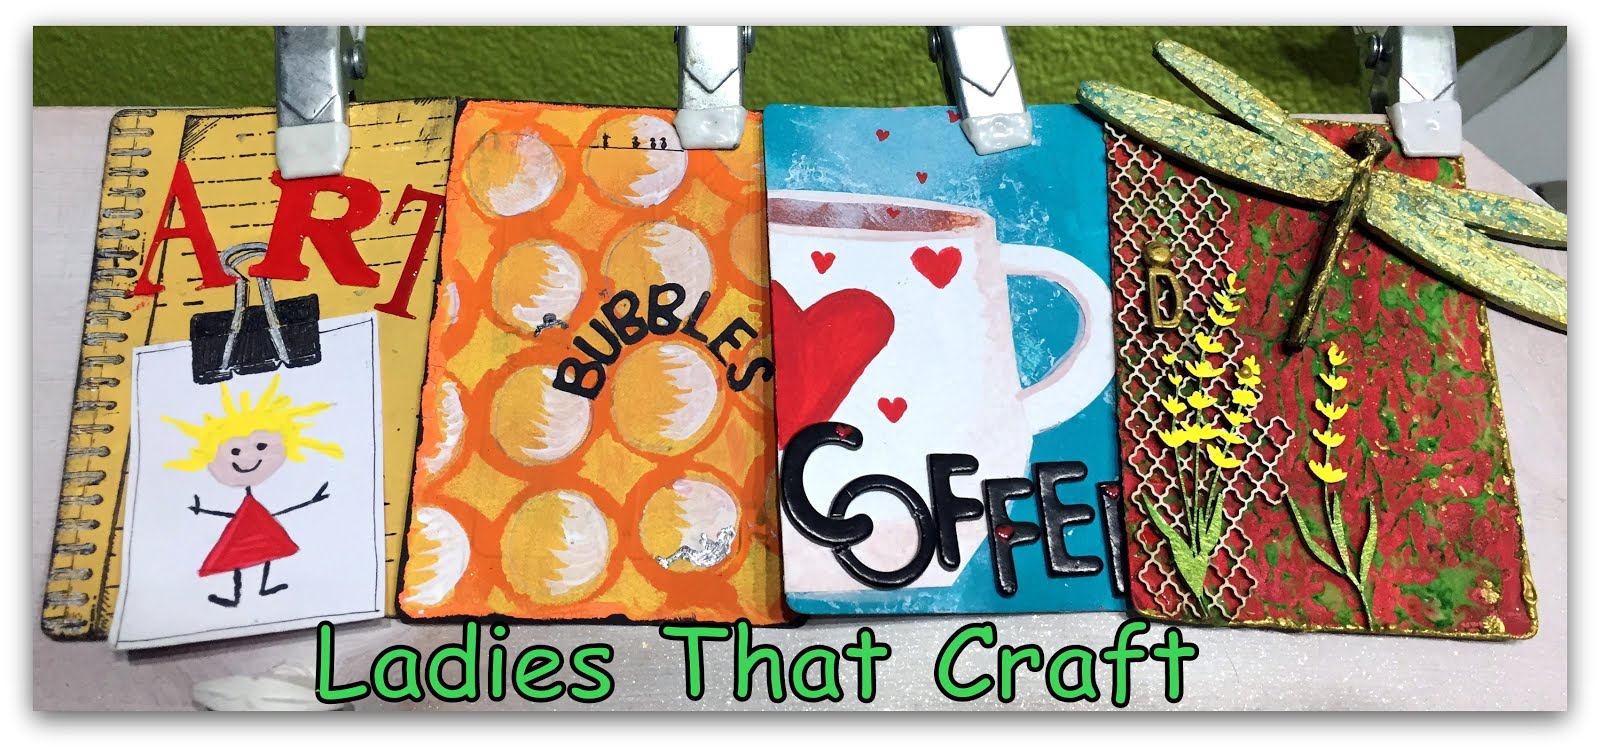 Ladies That Craft